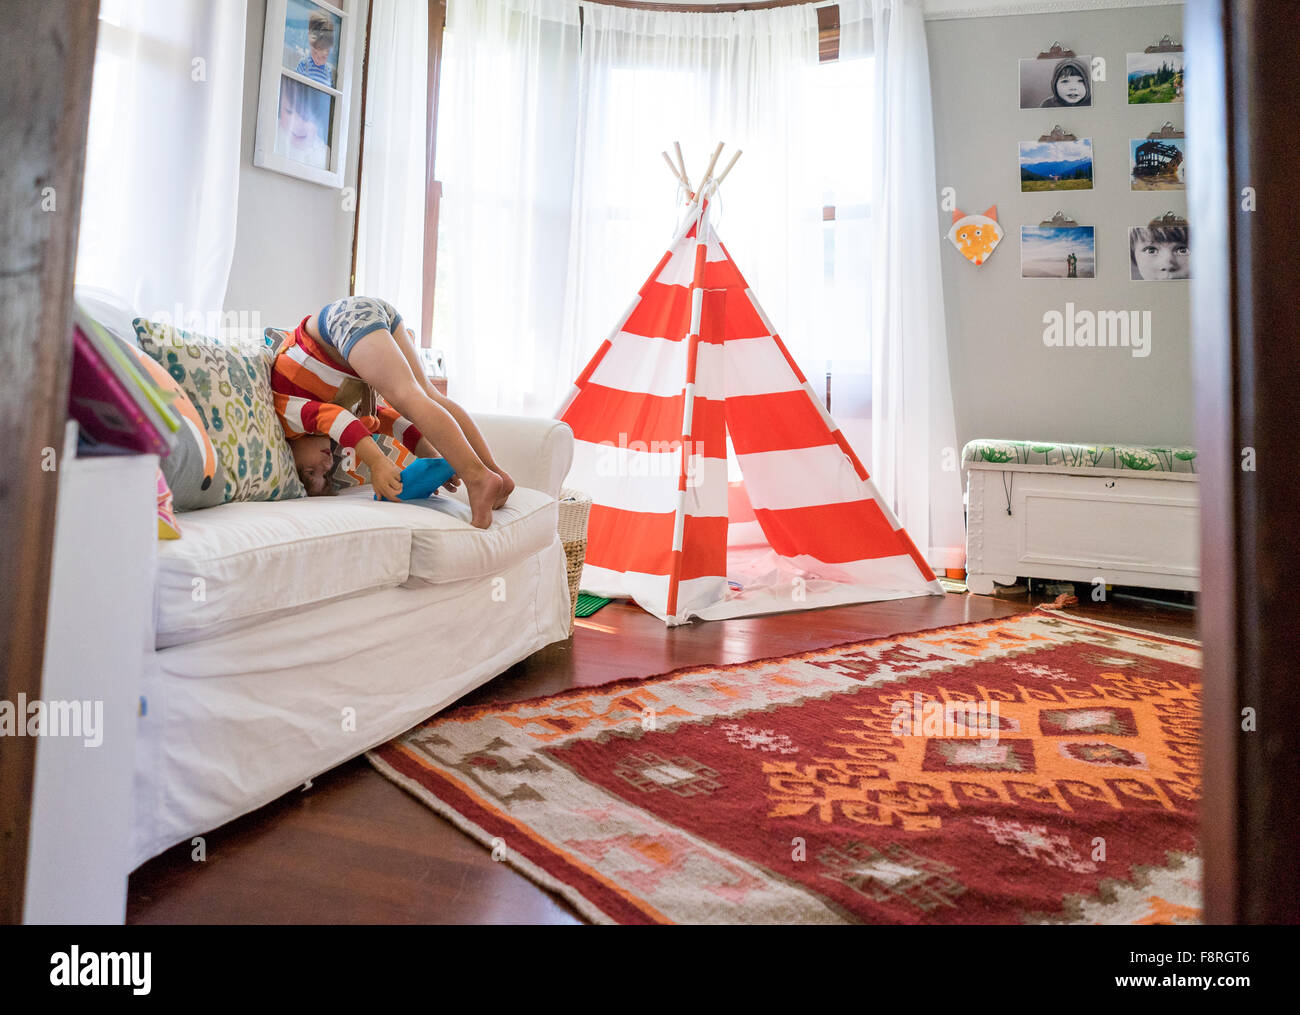 Young boy upside down  playing on tablet - Stock Image